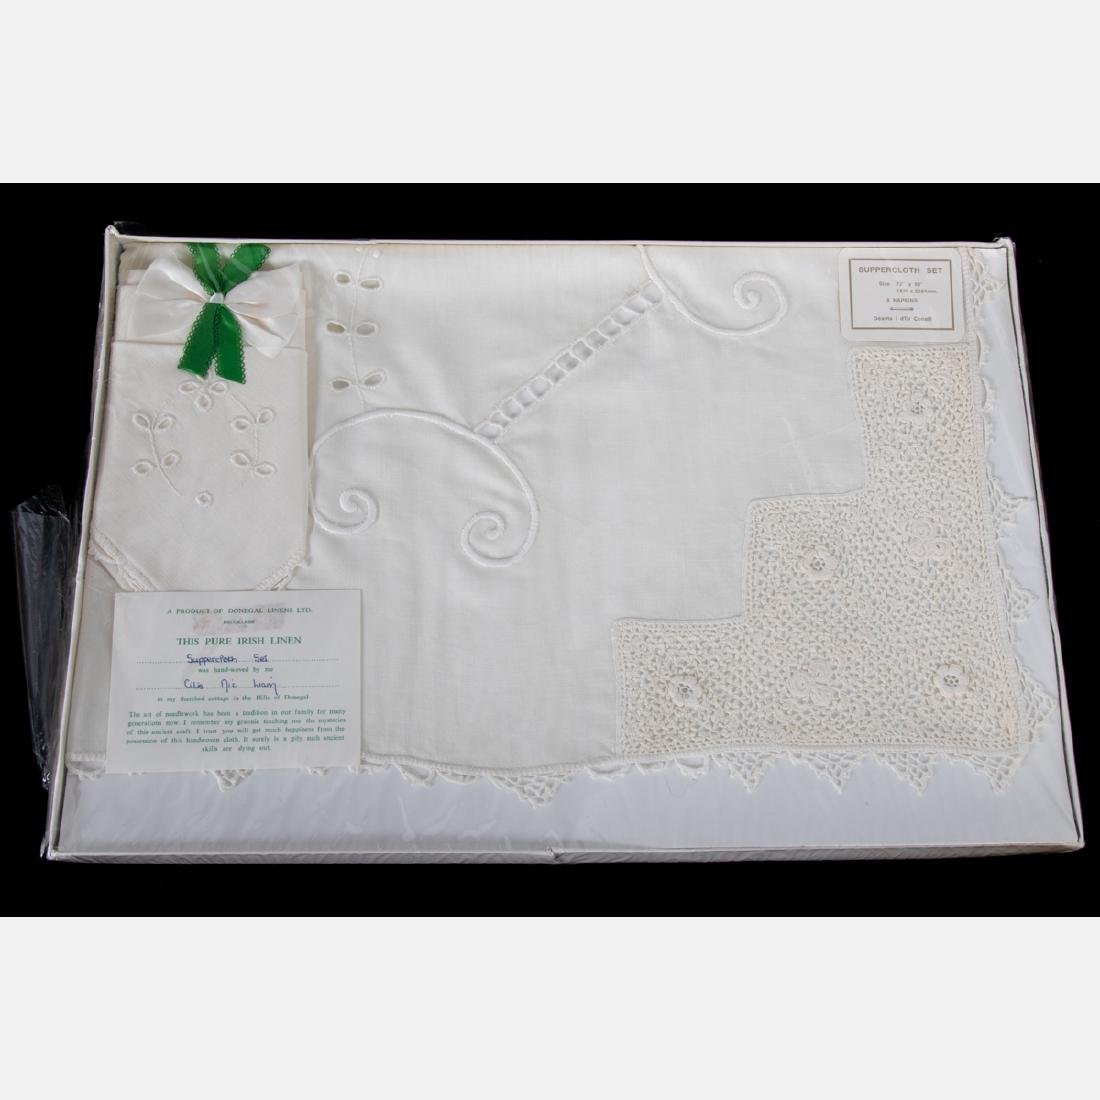 A Set of Irish Hand Woven Donegal Linen Table Cloth and